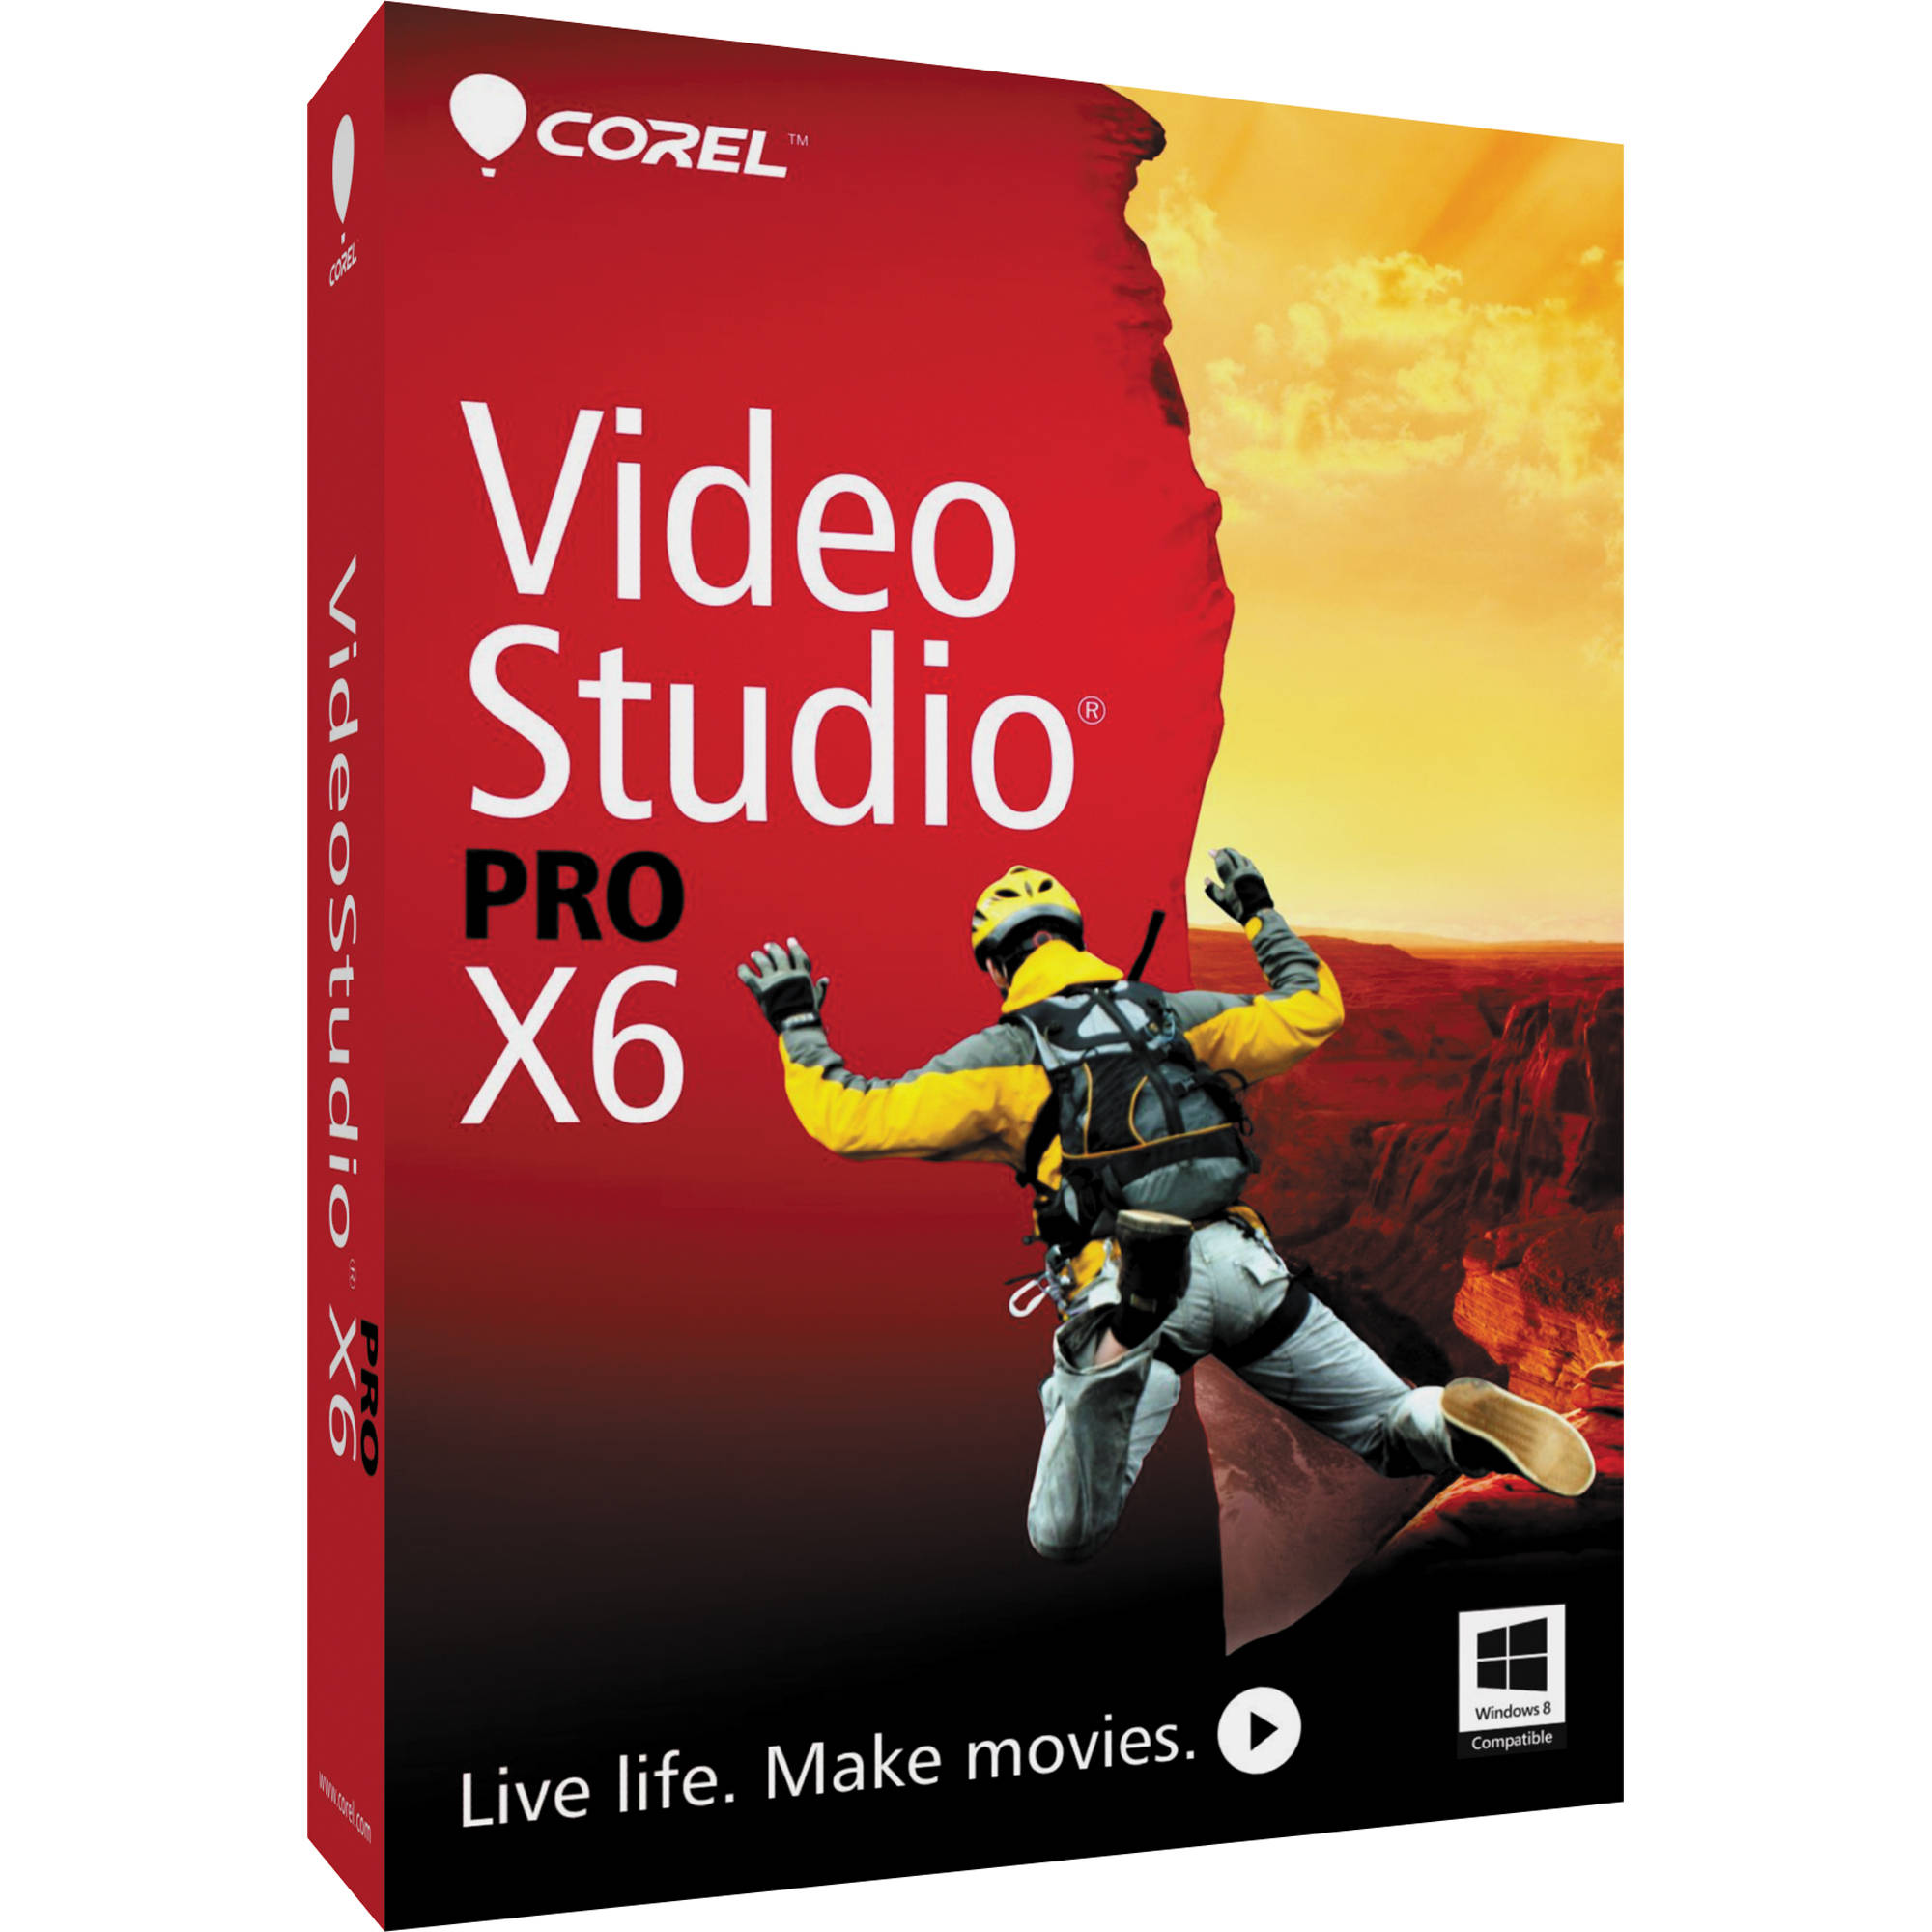 corel videostudio pro x6 templates free download